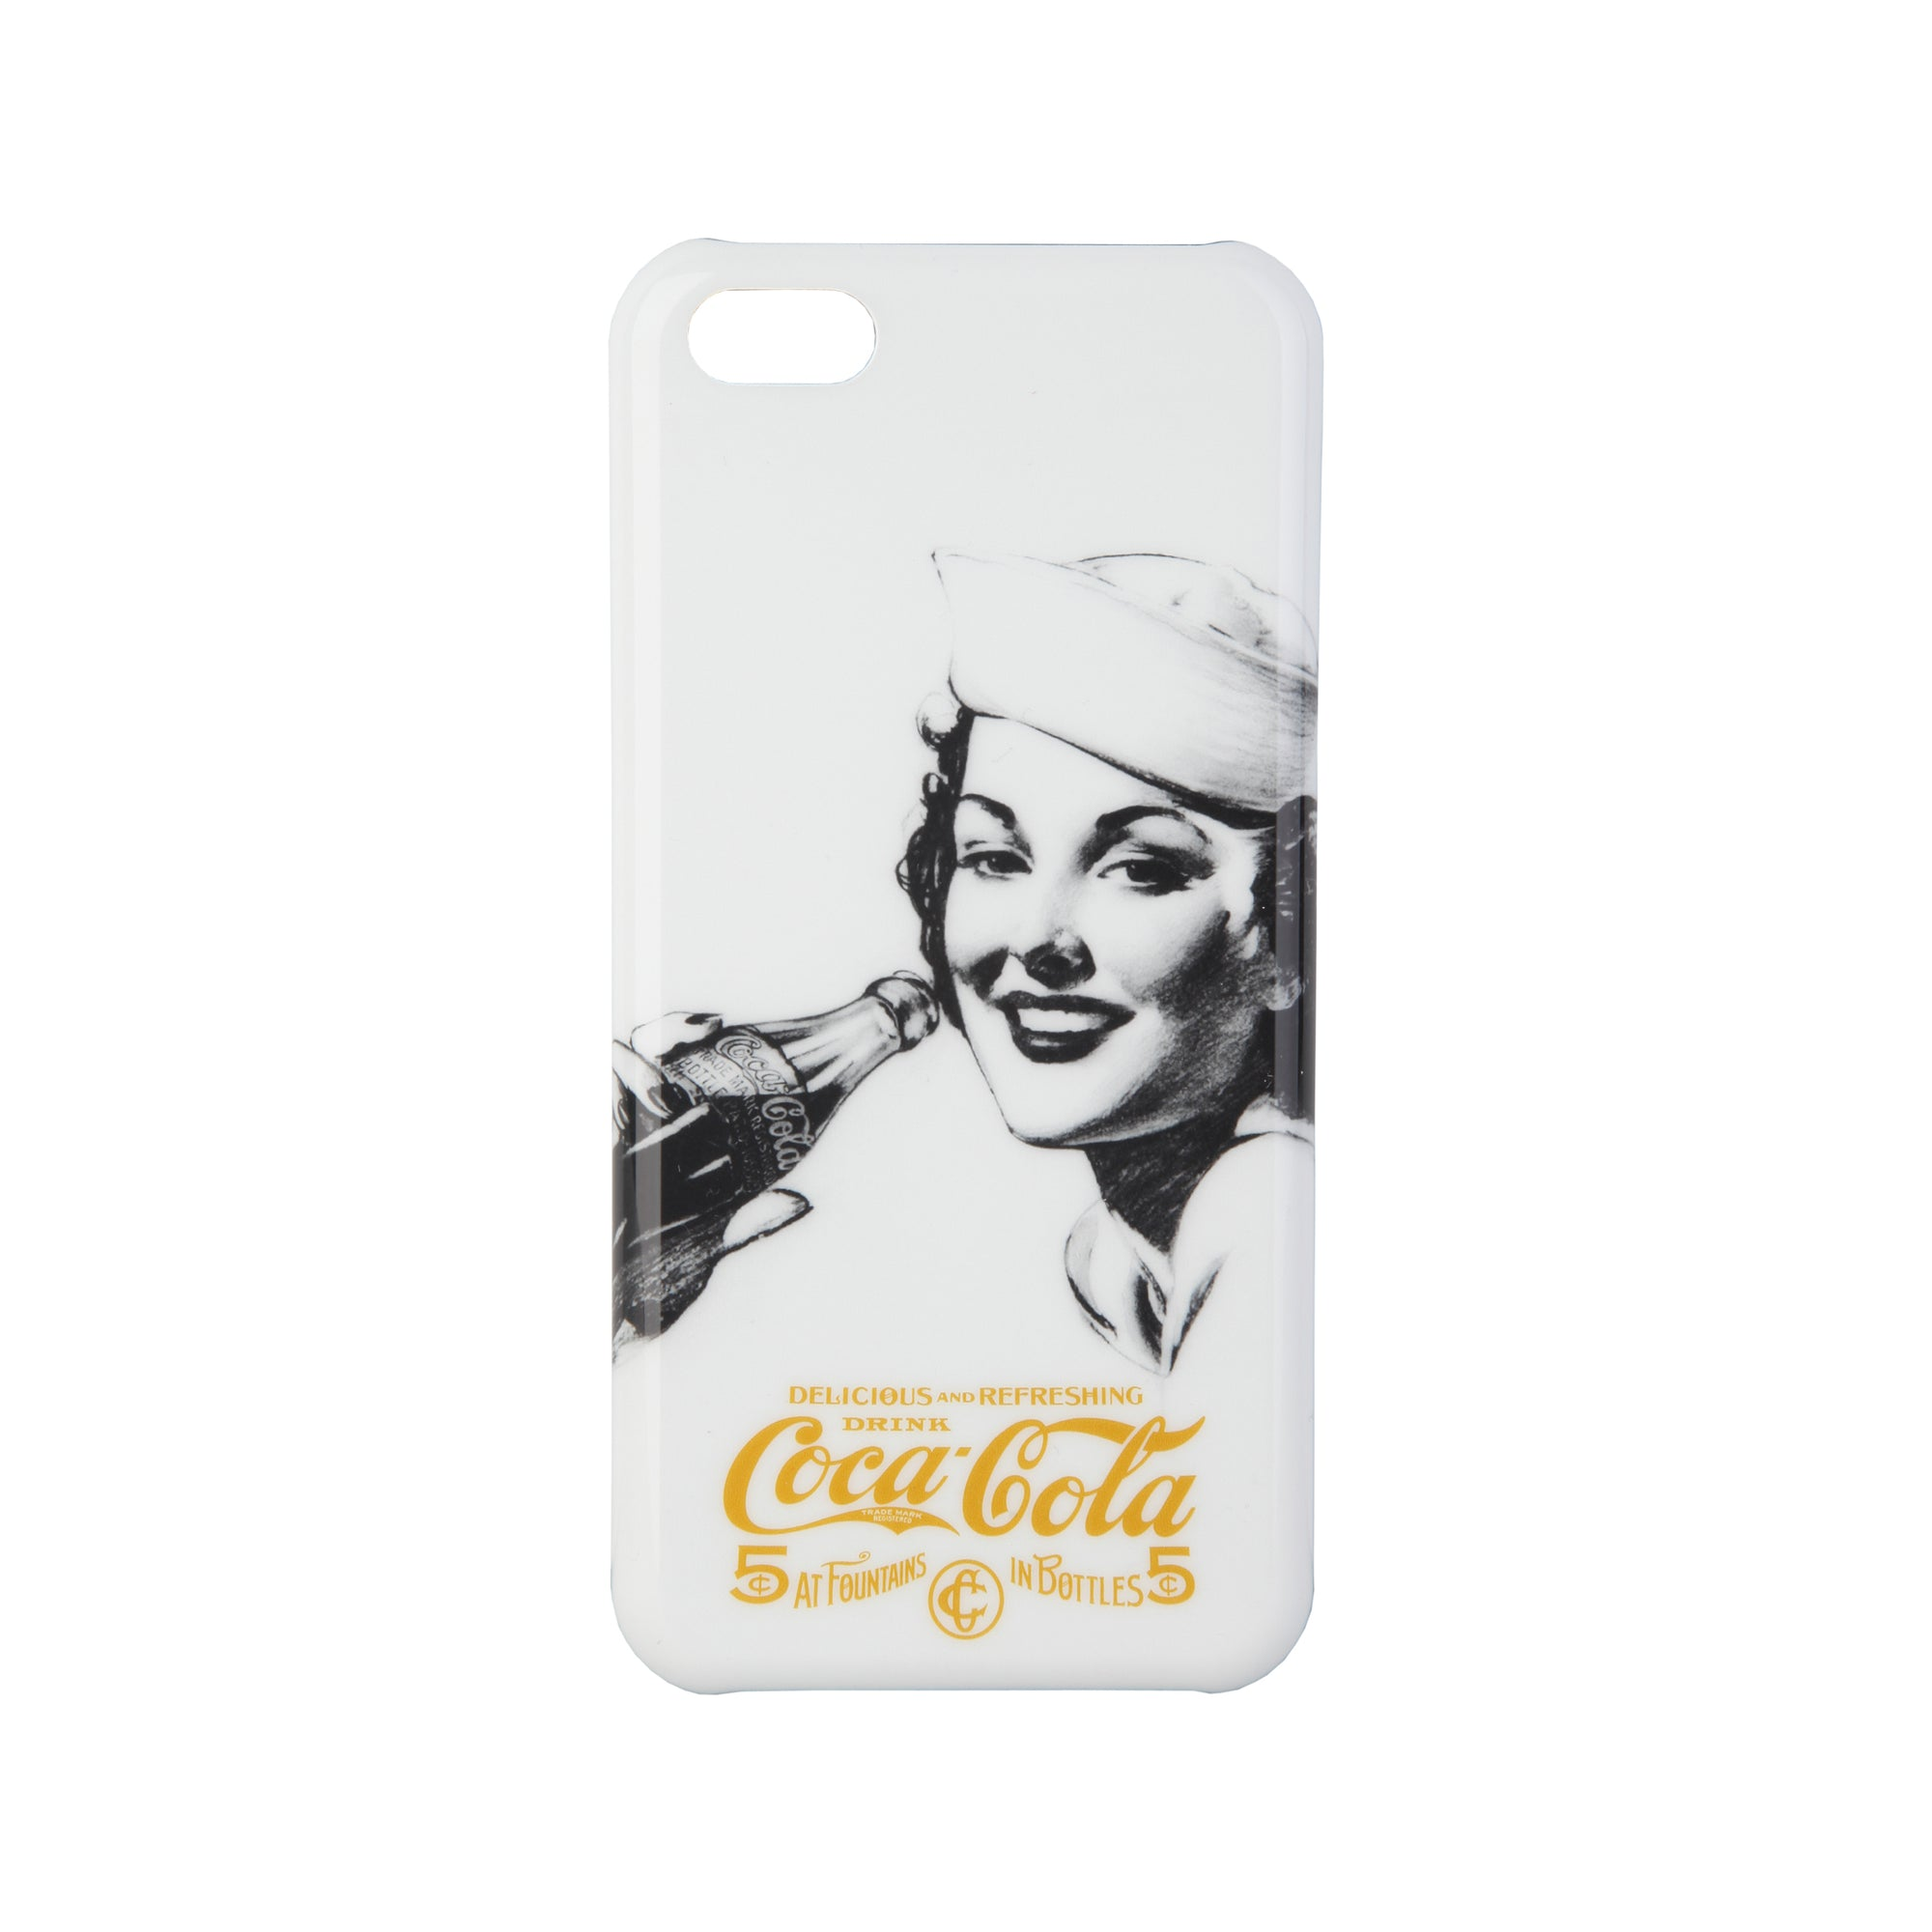 Coca Cola Unisex White Cases Mod. Cover | Wachoria